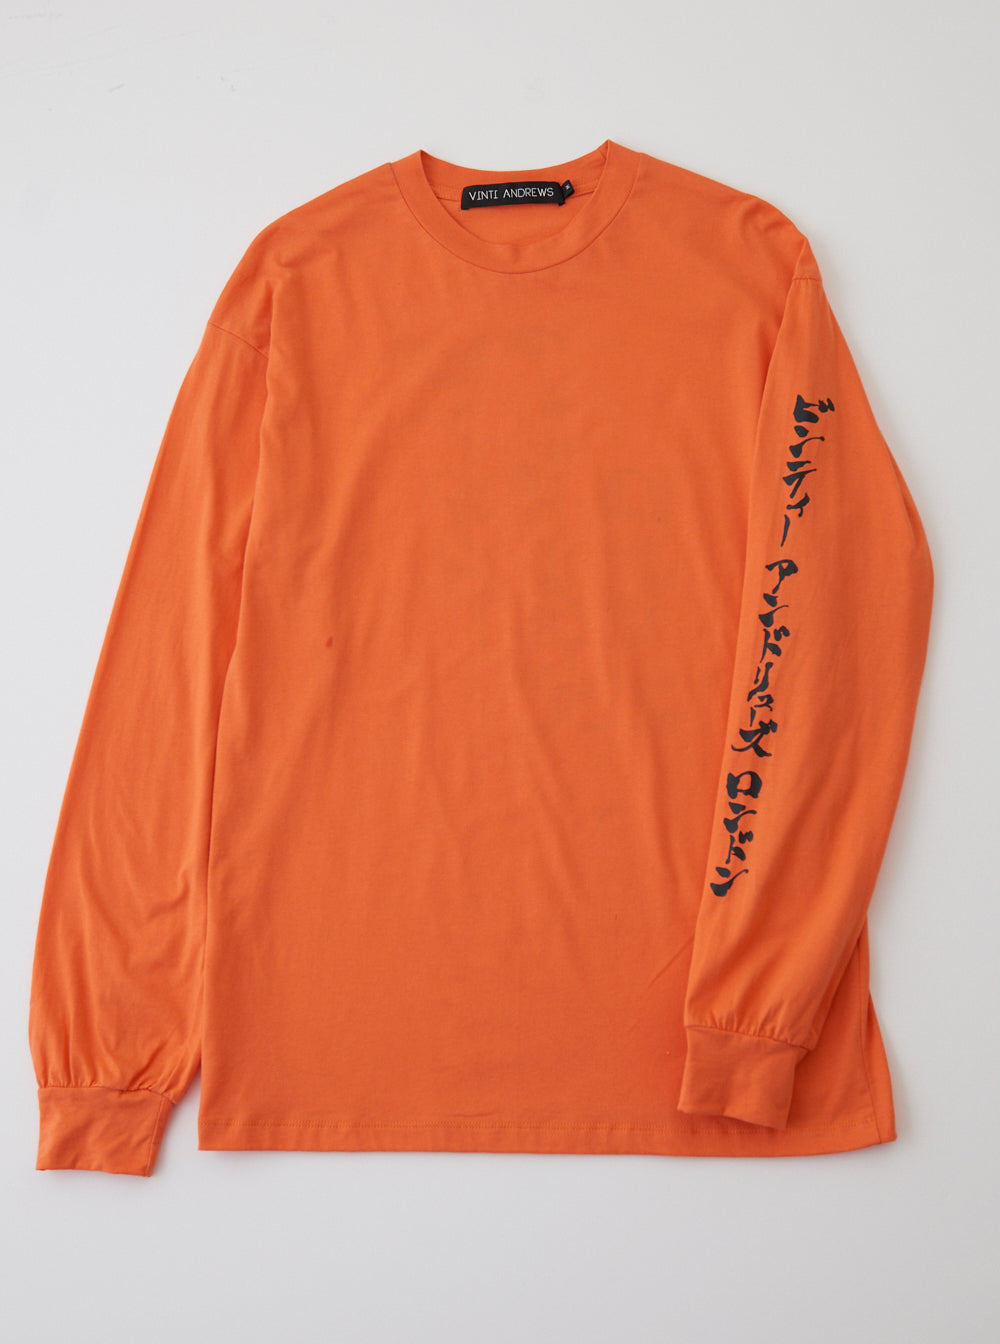 Vinti Andrews Printed Long Sleeves T-Shirt Orange